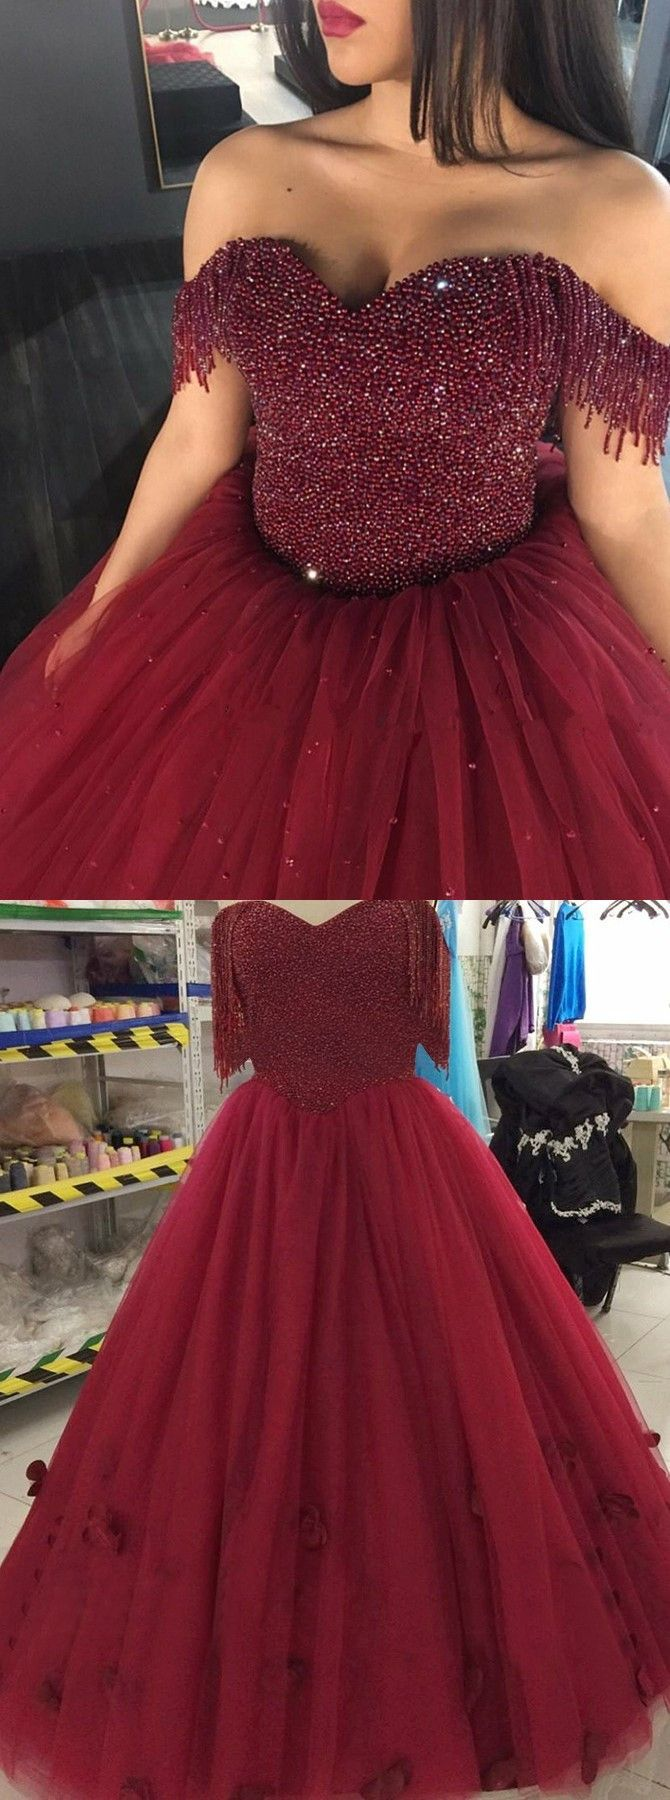 maroon ball gowns for sweet 16 chic off shoulder prom evening